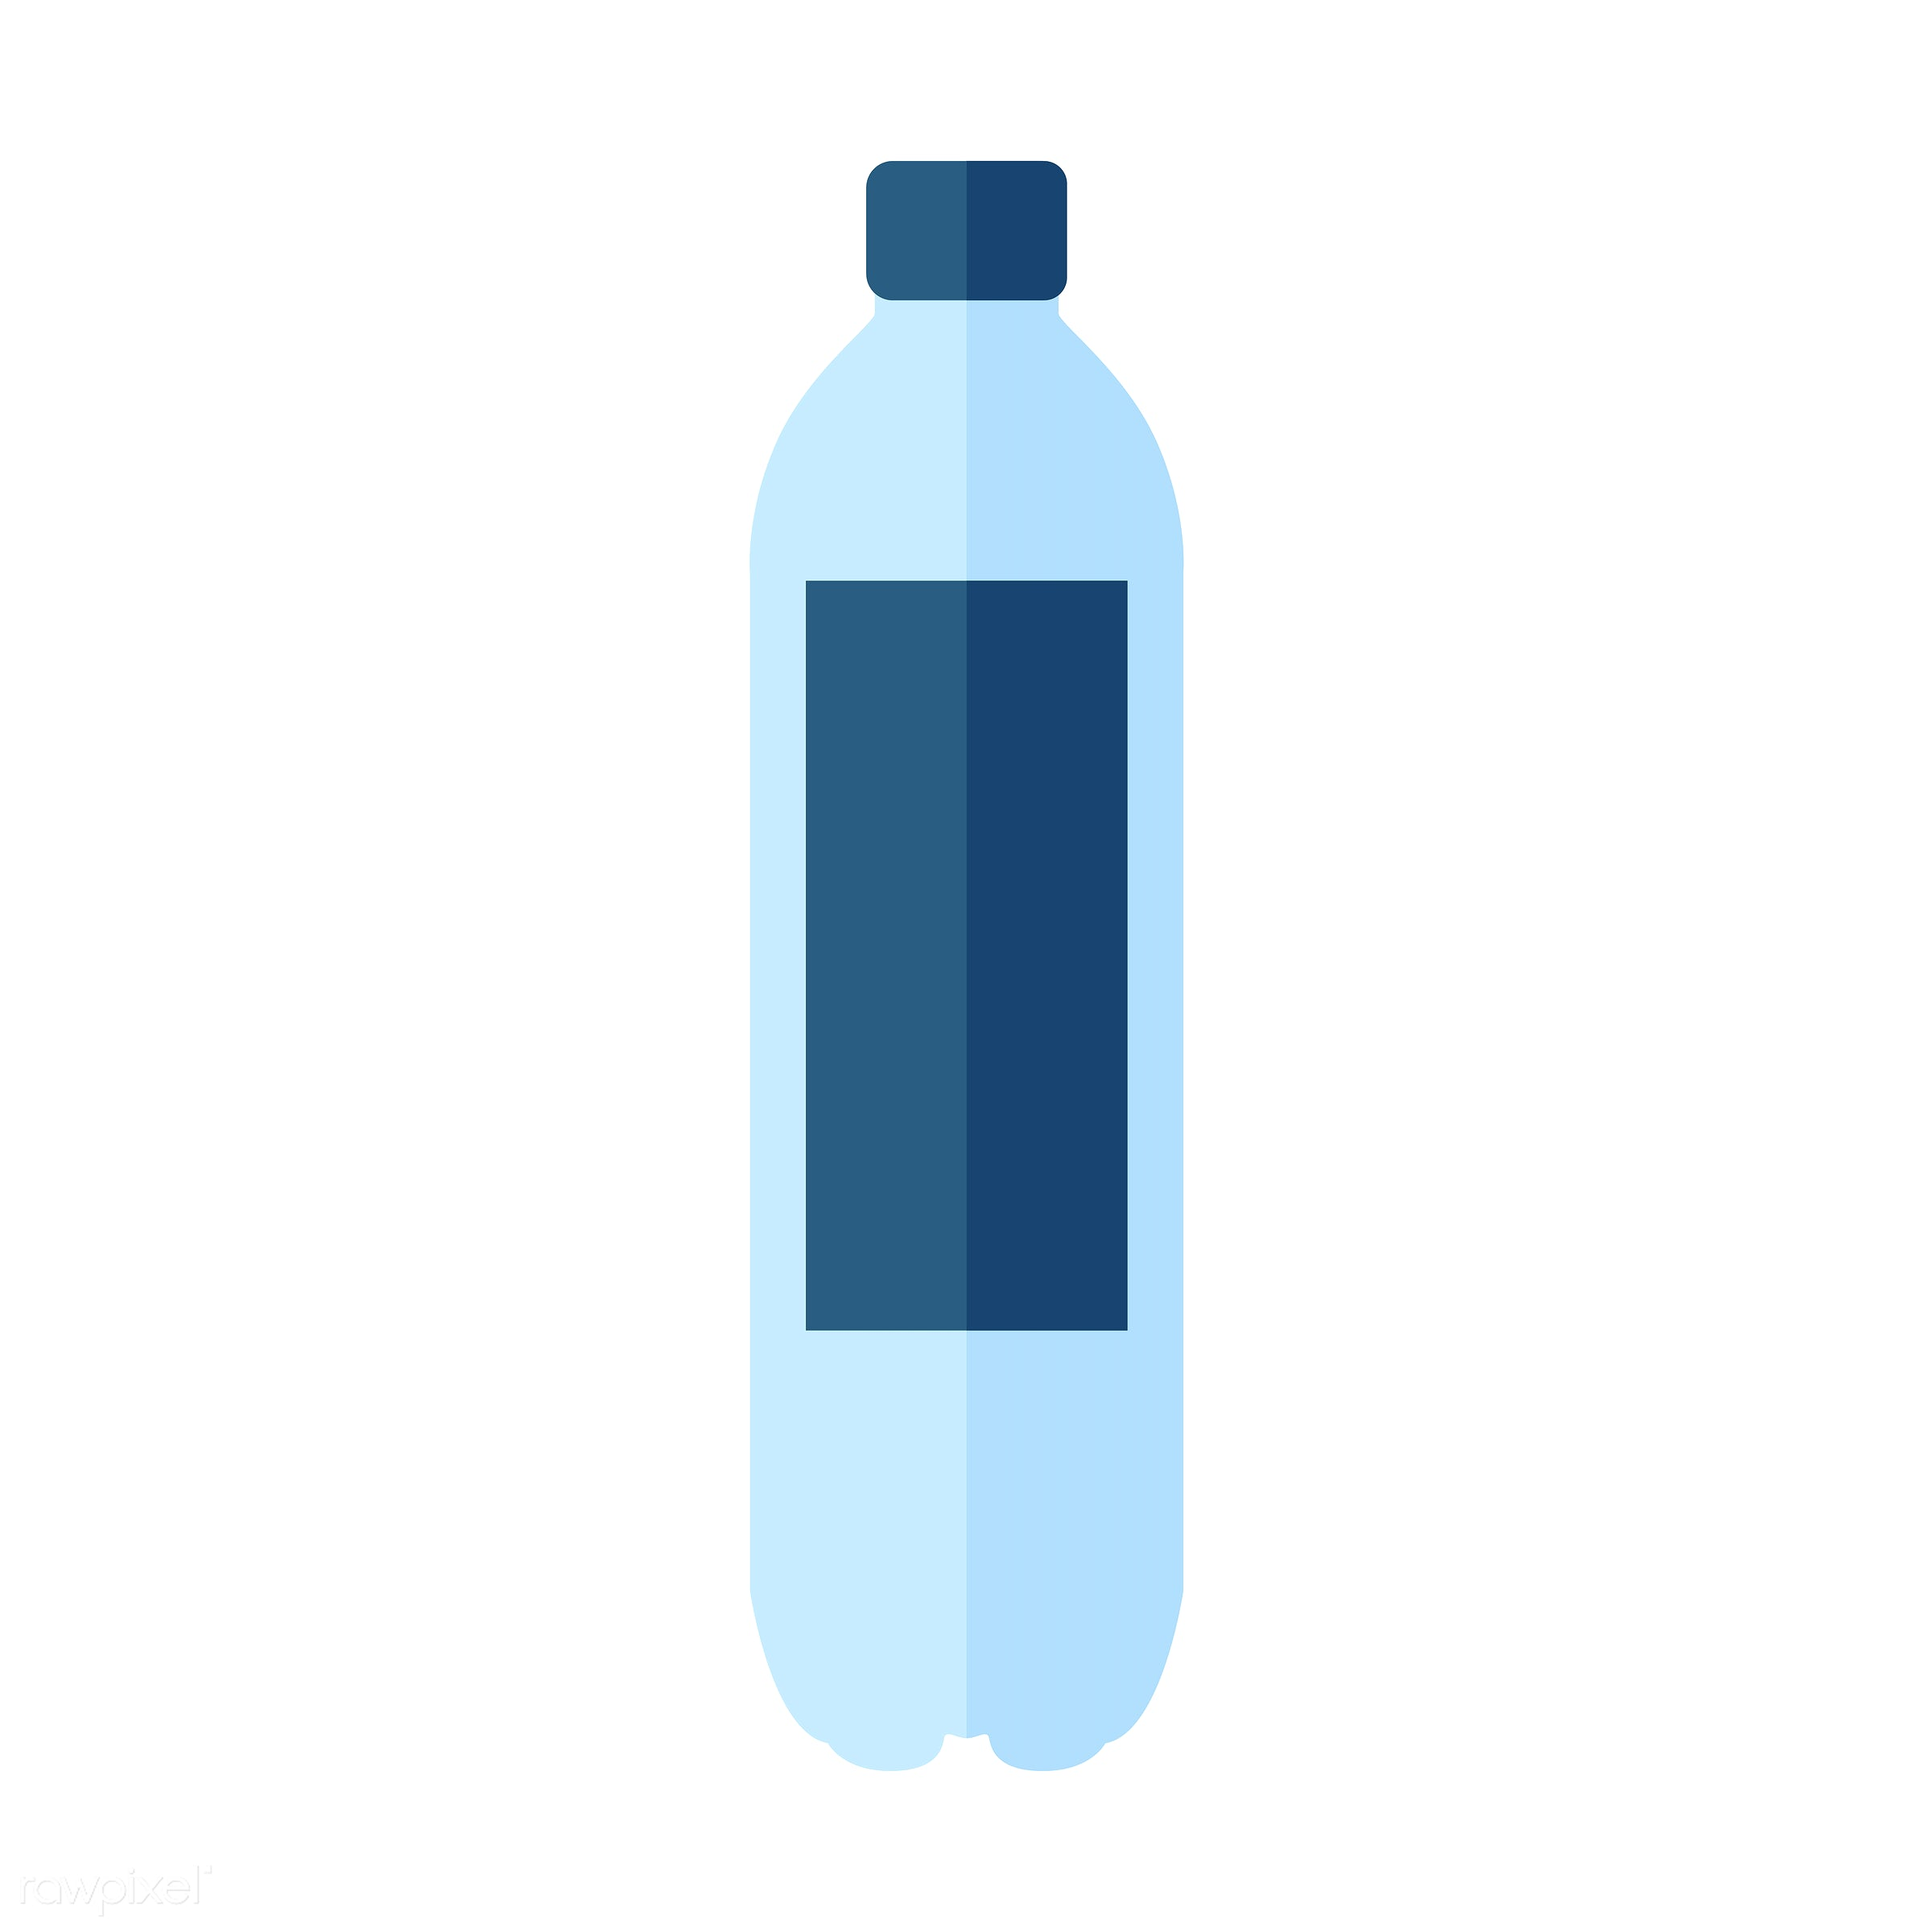 vector, graphic, illustration, icon, symbol, colorful, cute, drink, beverage, water, blue, plastic bottle, water bottle